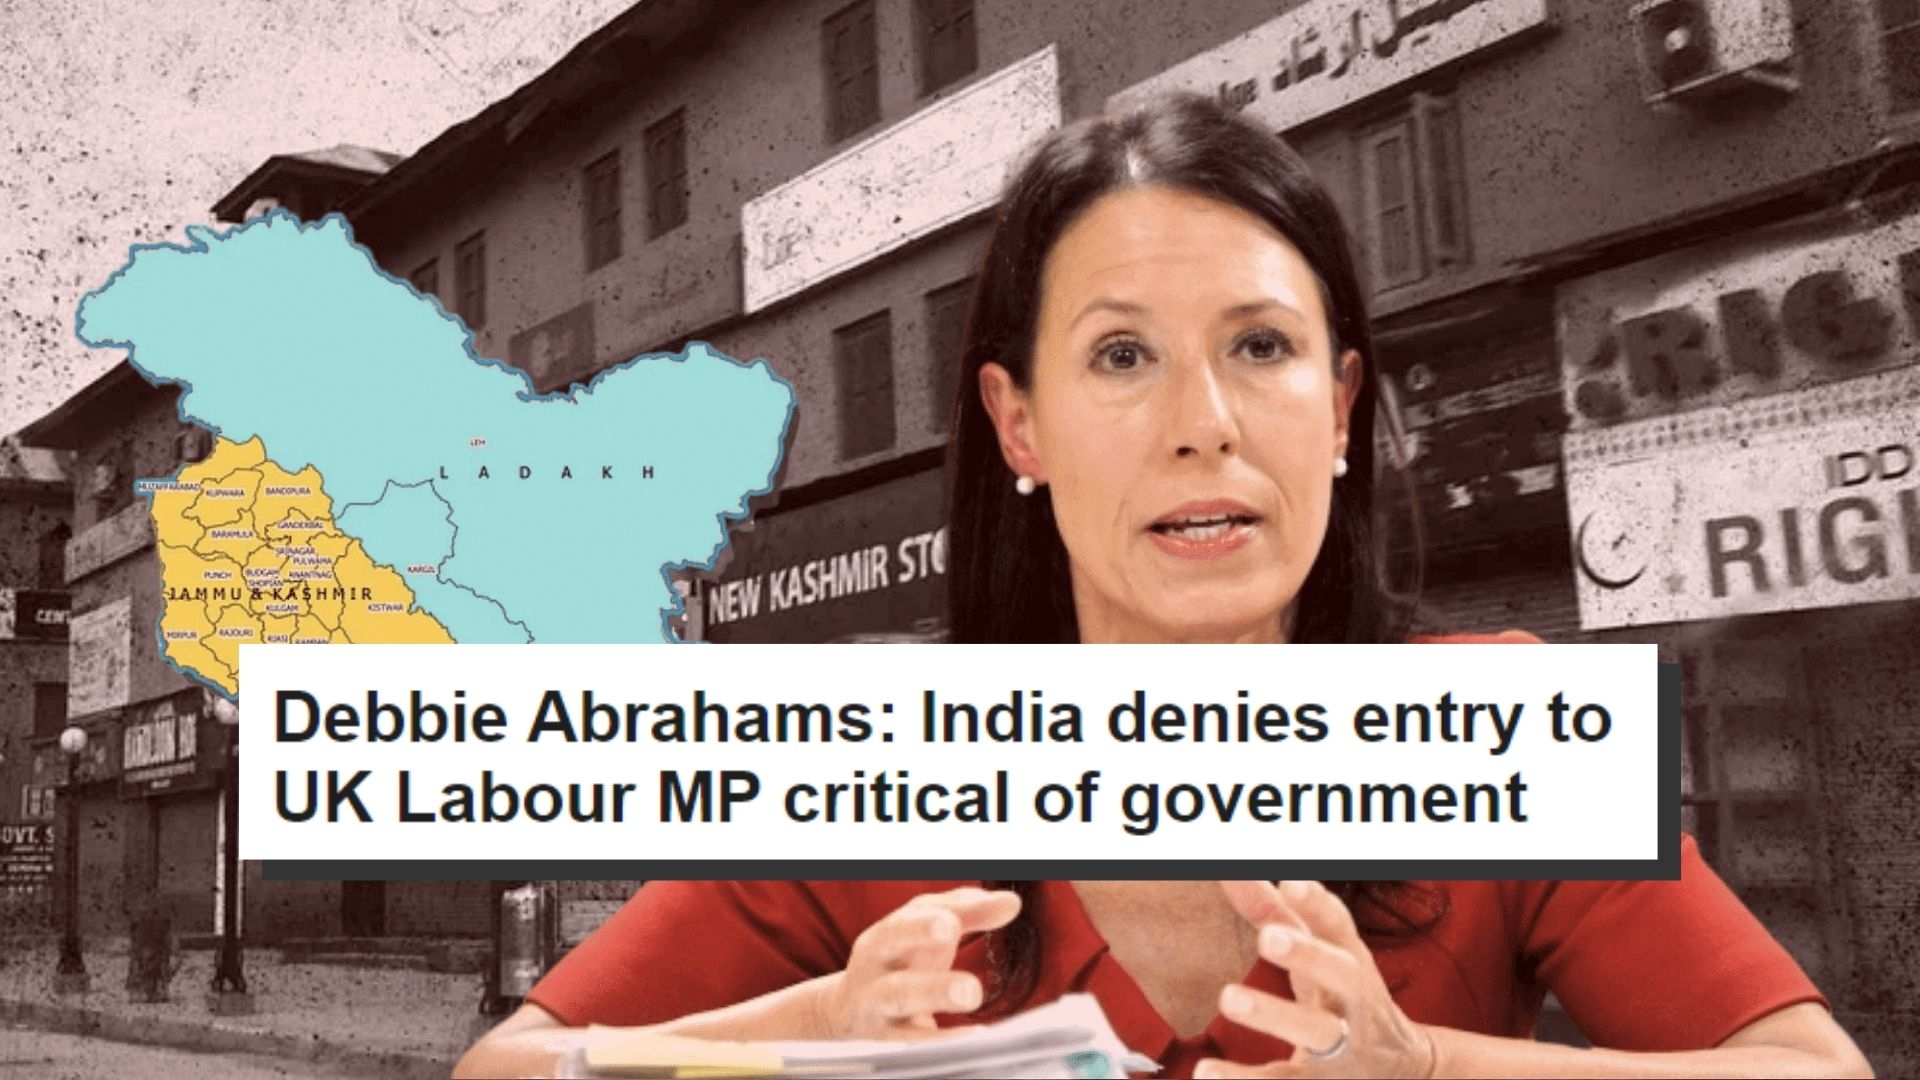 'India Denies Entry to MP Critical of Govt': UK Media on Abrahams